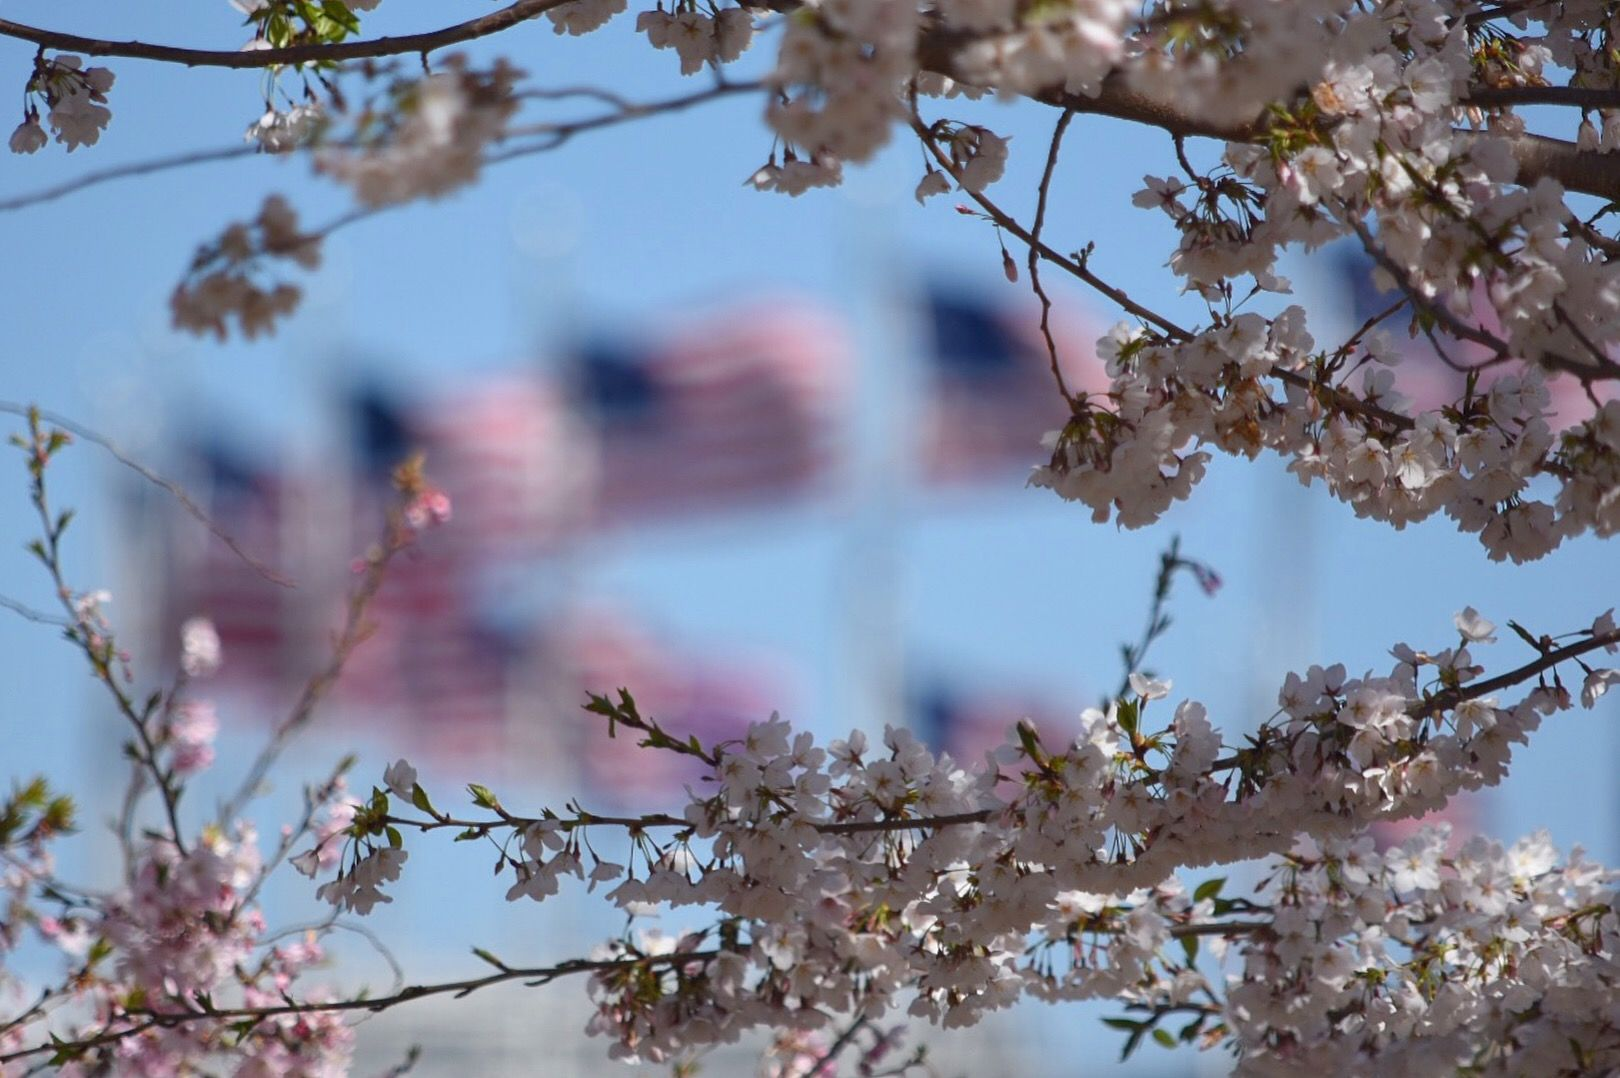 Cherry blossoms swayed in the brisk winds Monday. The flags surrounding the Washington Monument whipped in the wind. (WTOP/Dave Dildine)